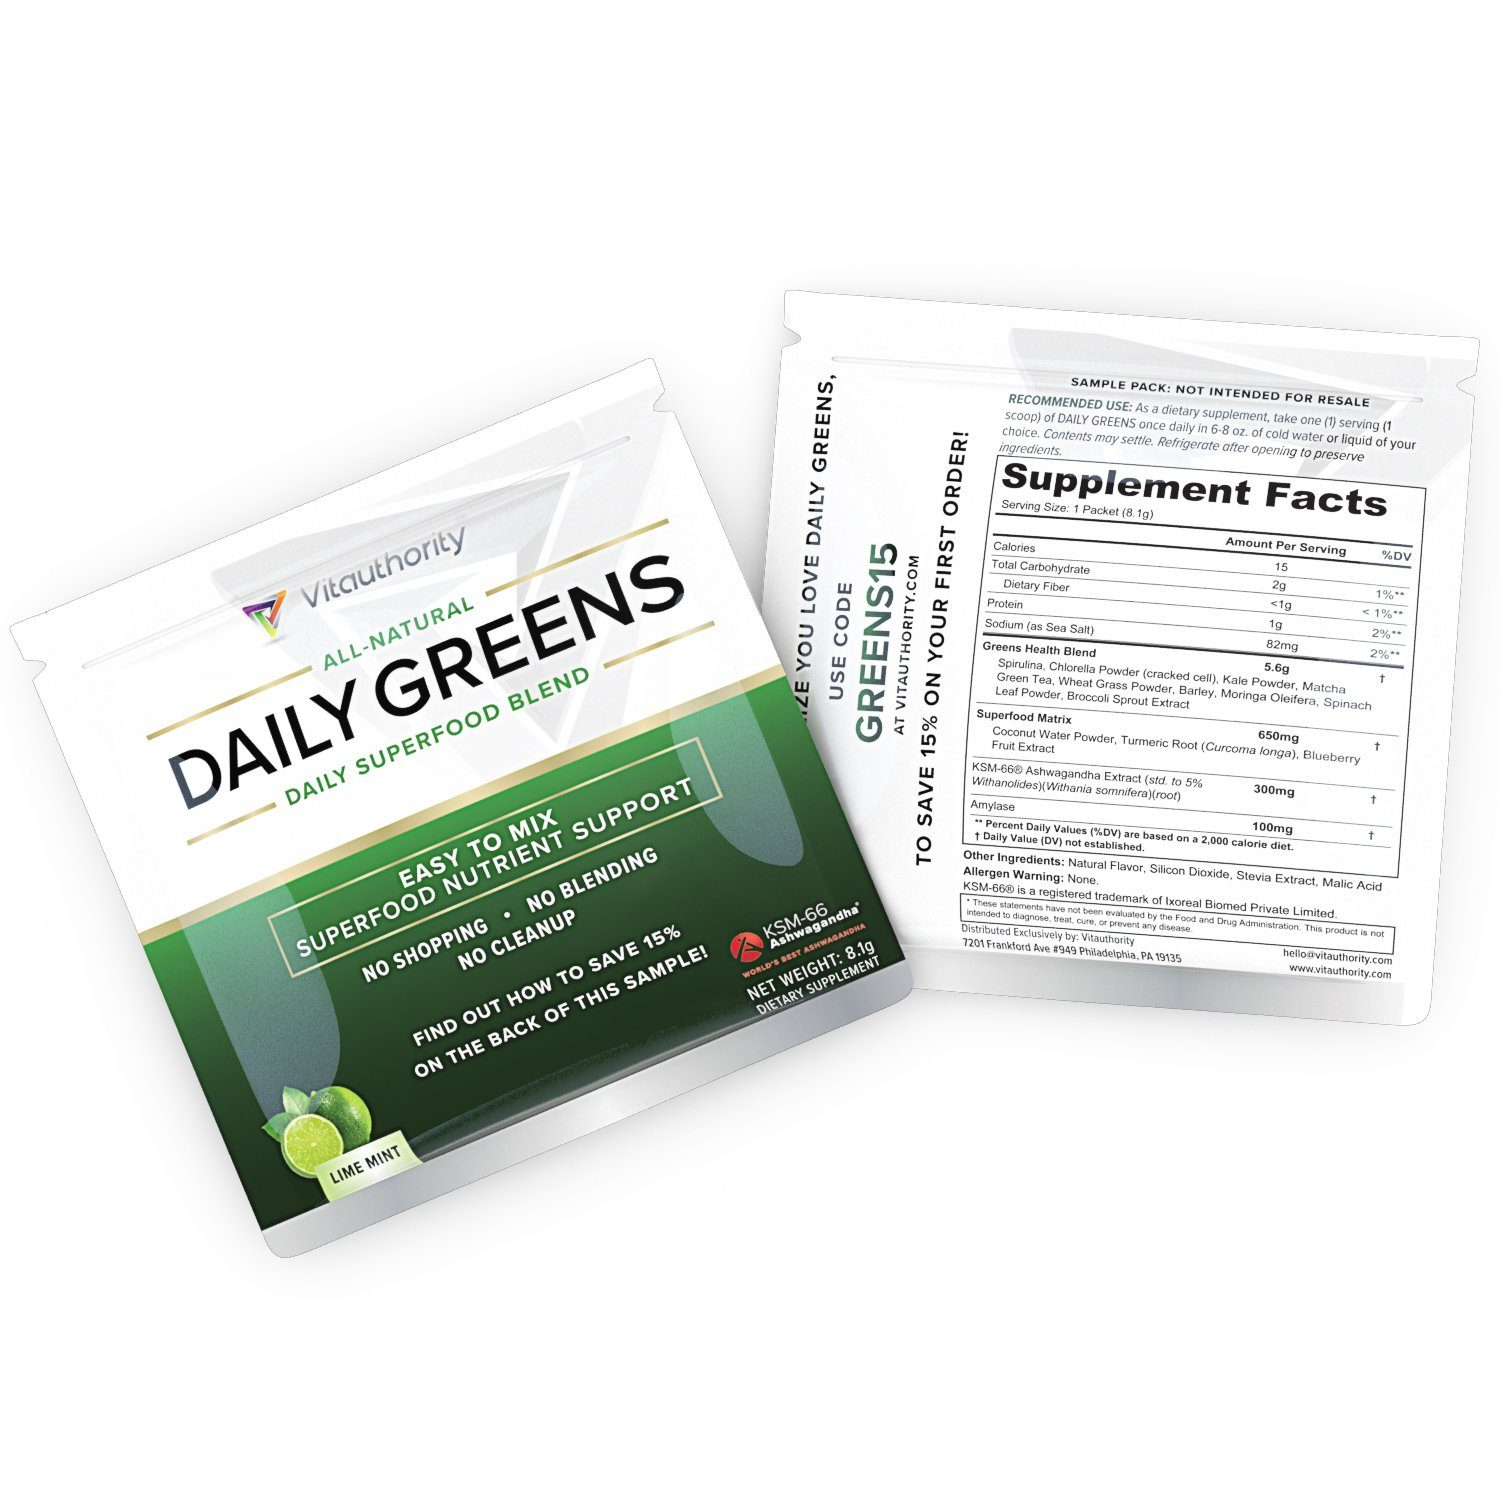 DAILY GREENS SAMPLE (2 Pack)